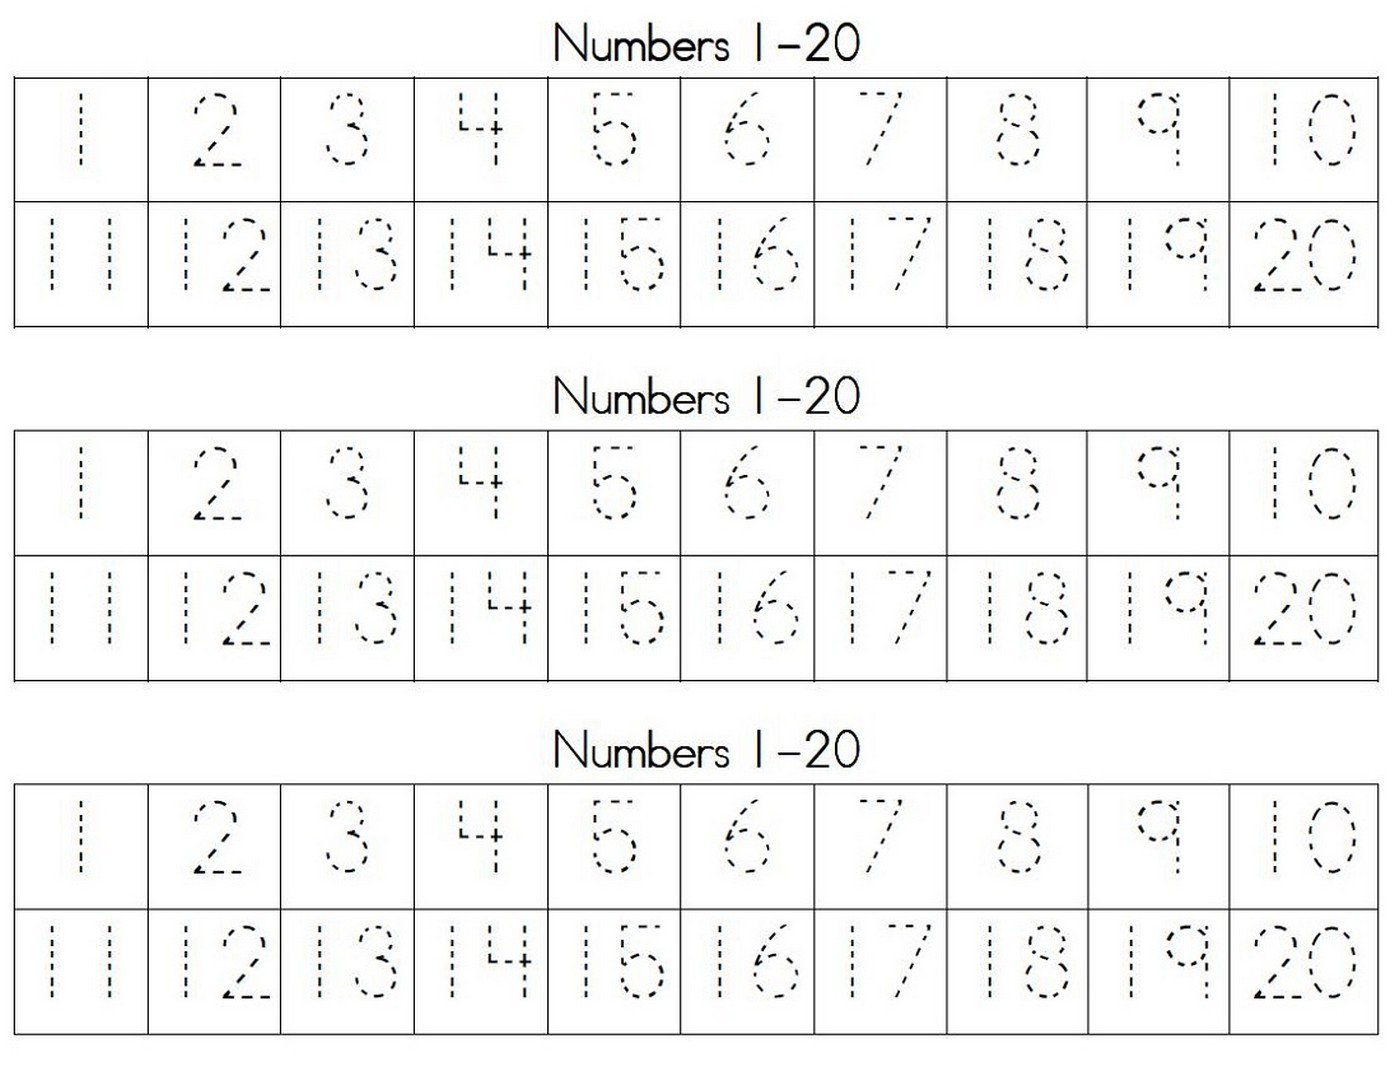 tracing numbers for kg practice 1-20